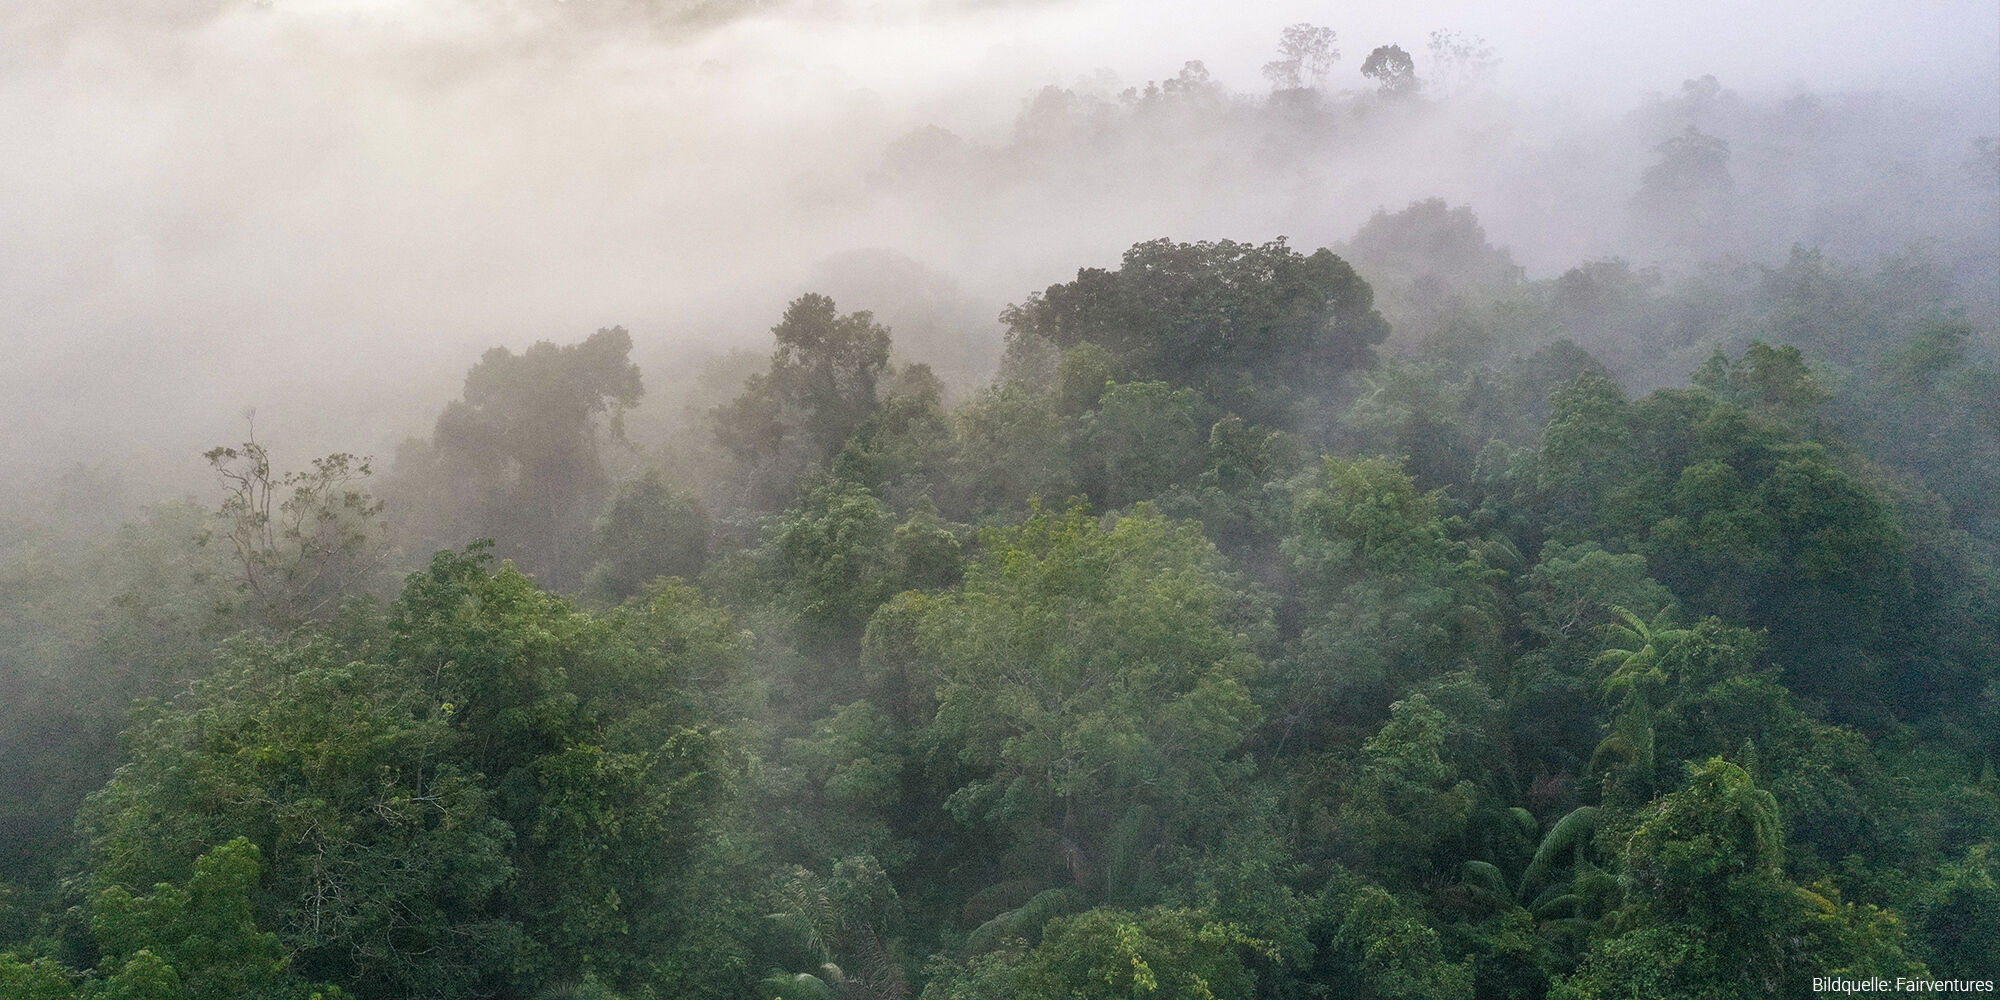 Sustainable environmental protection through reforestation in Borneo